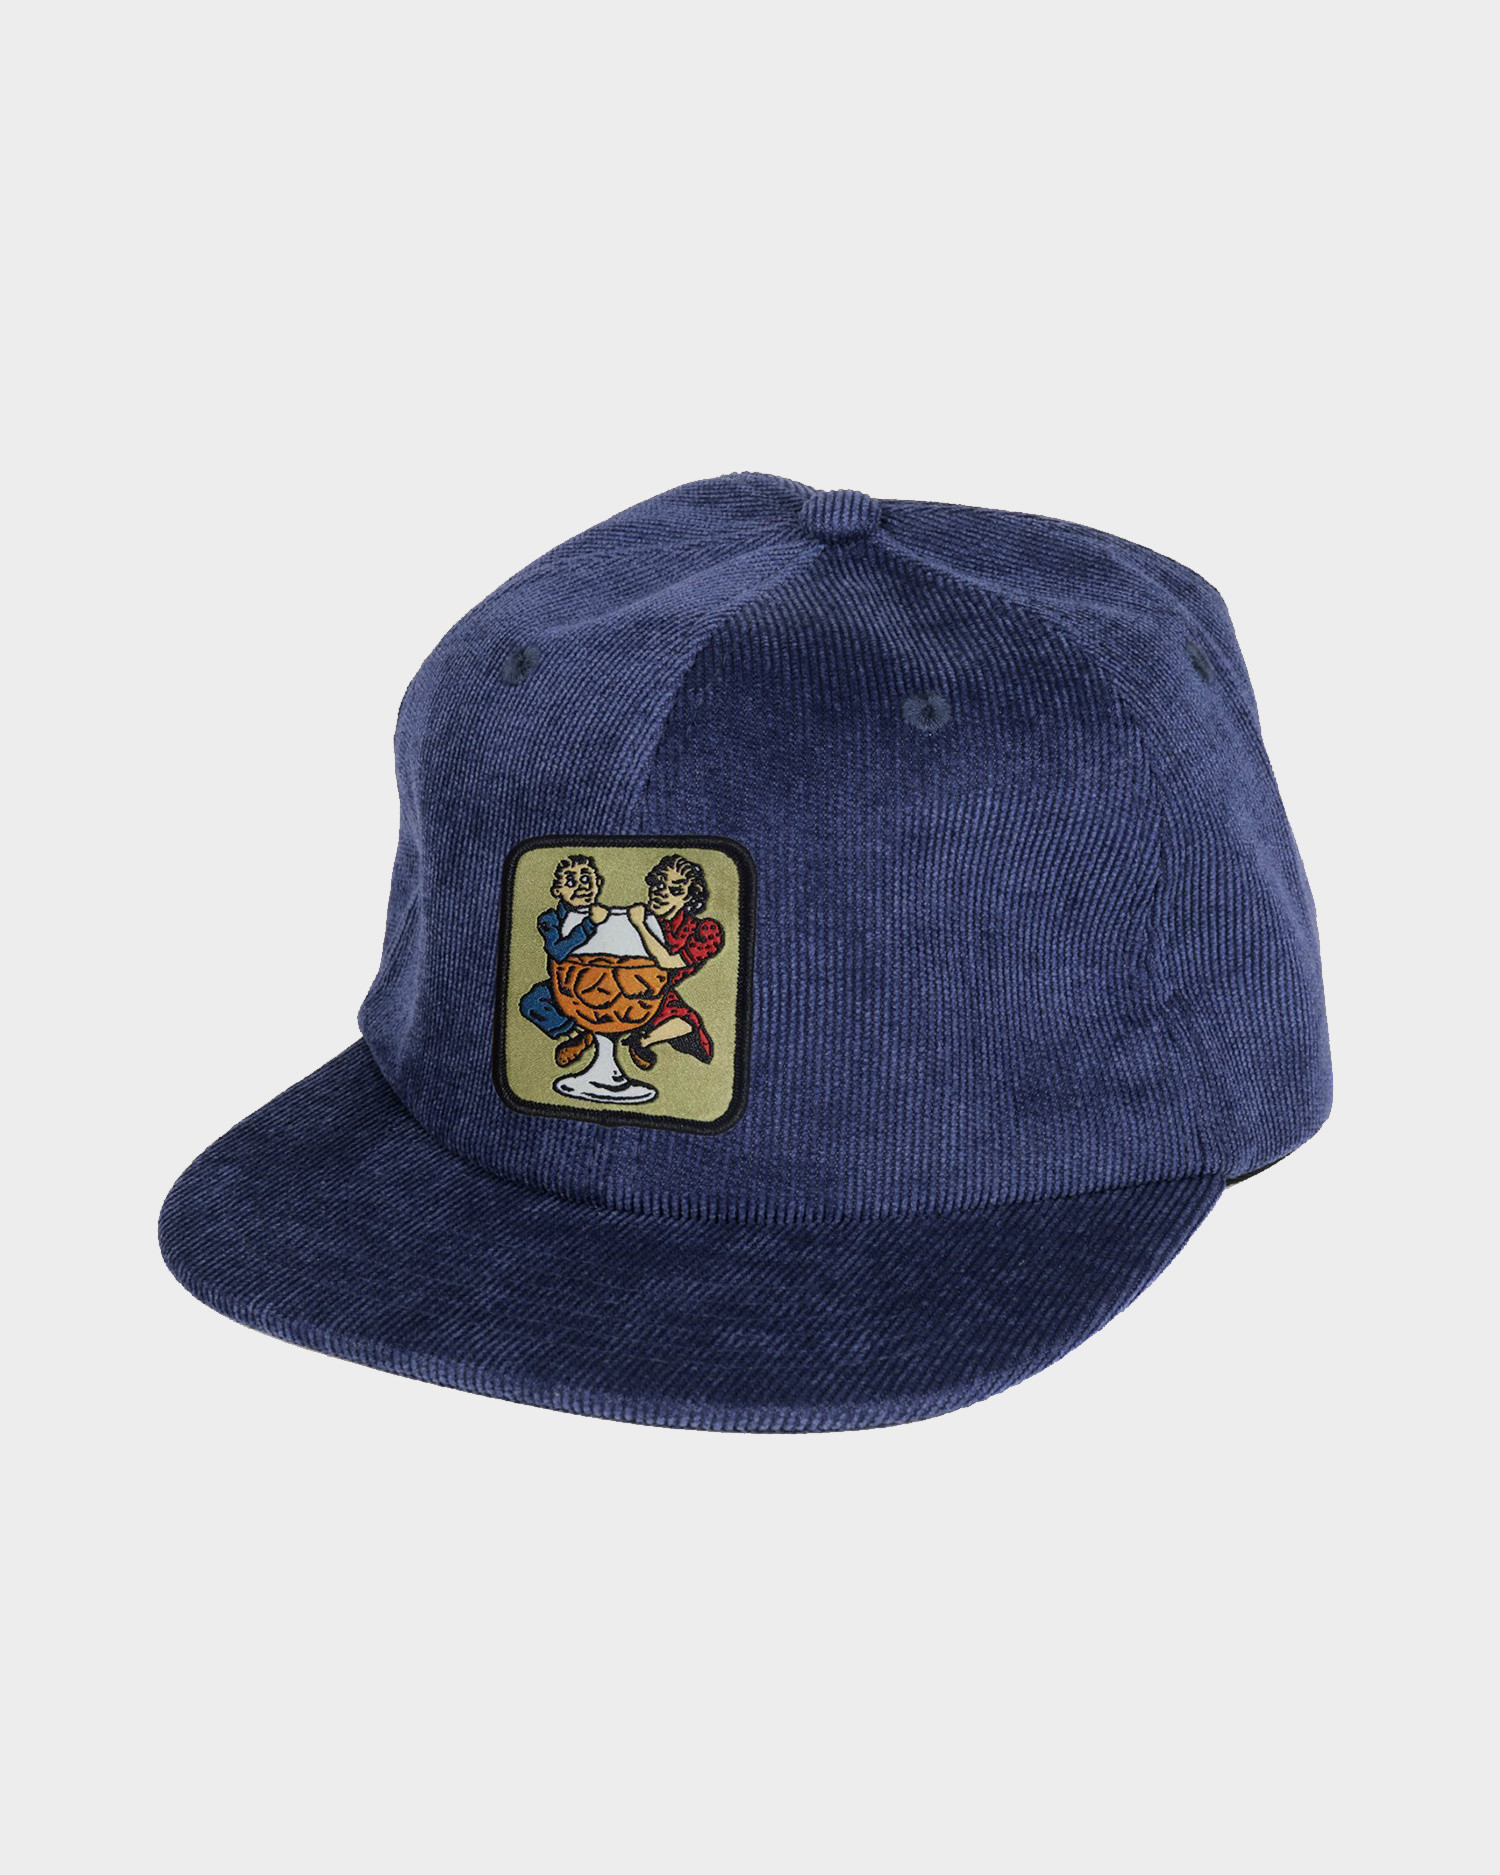 Passport With A Friend Cap Navy